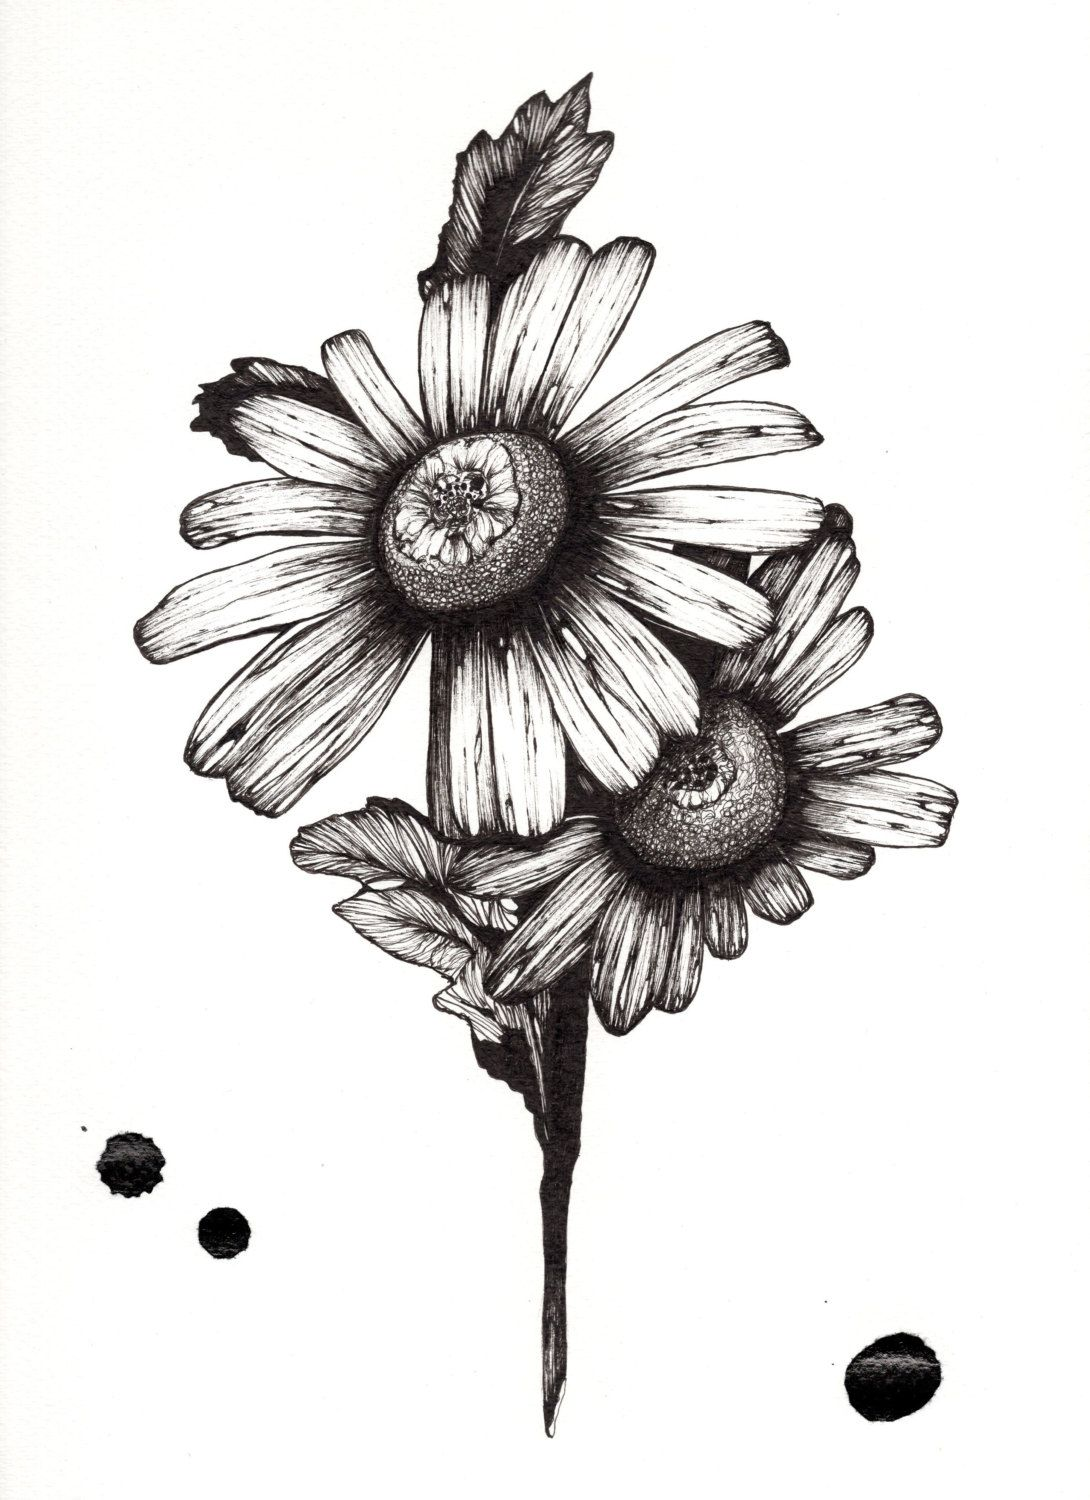 Daisy flower drawing tumblr painting practice drawings sketches daisy flower drawing tumblr izmirmasajfo